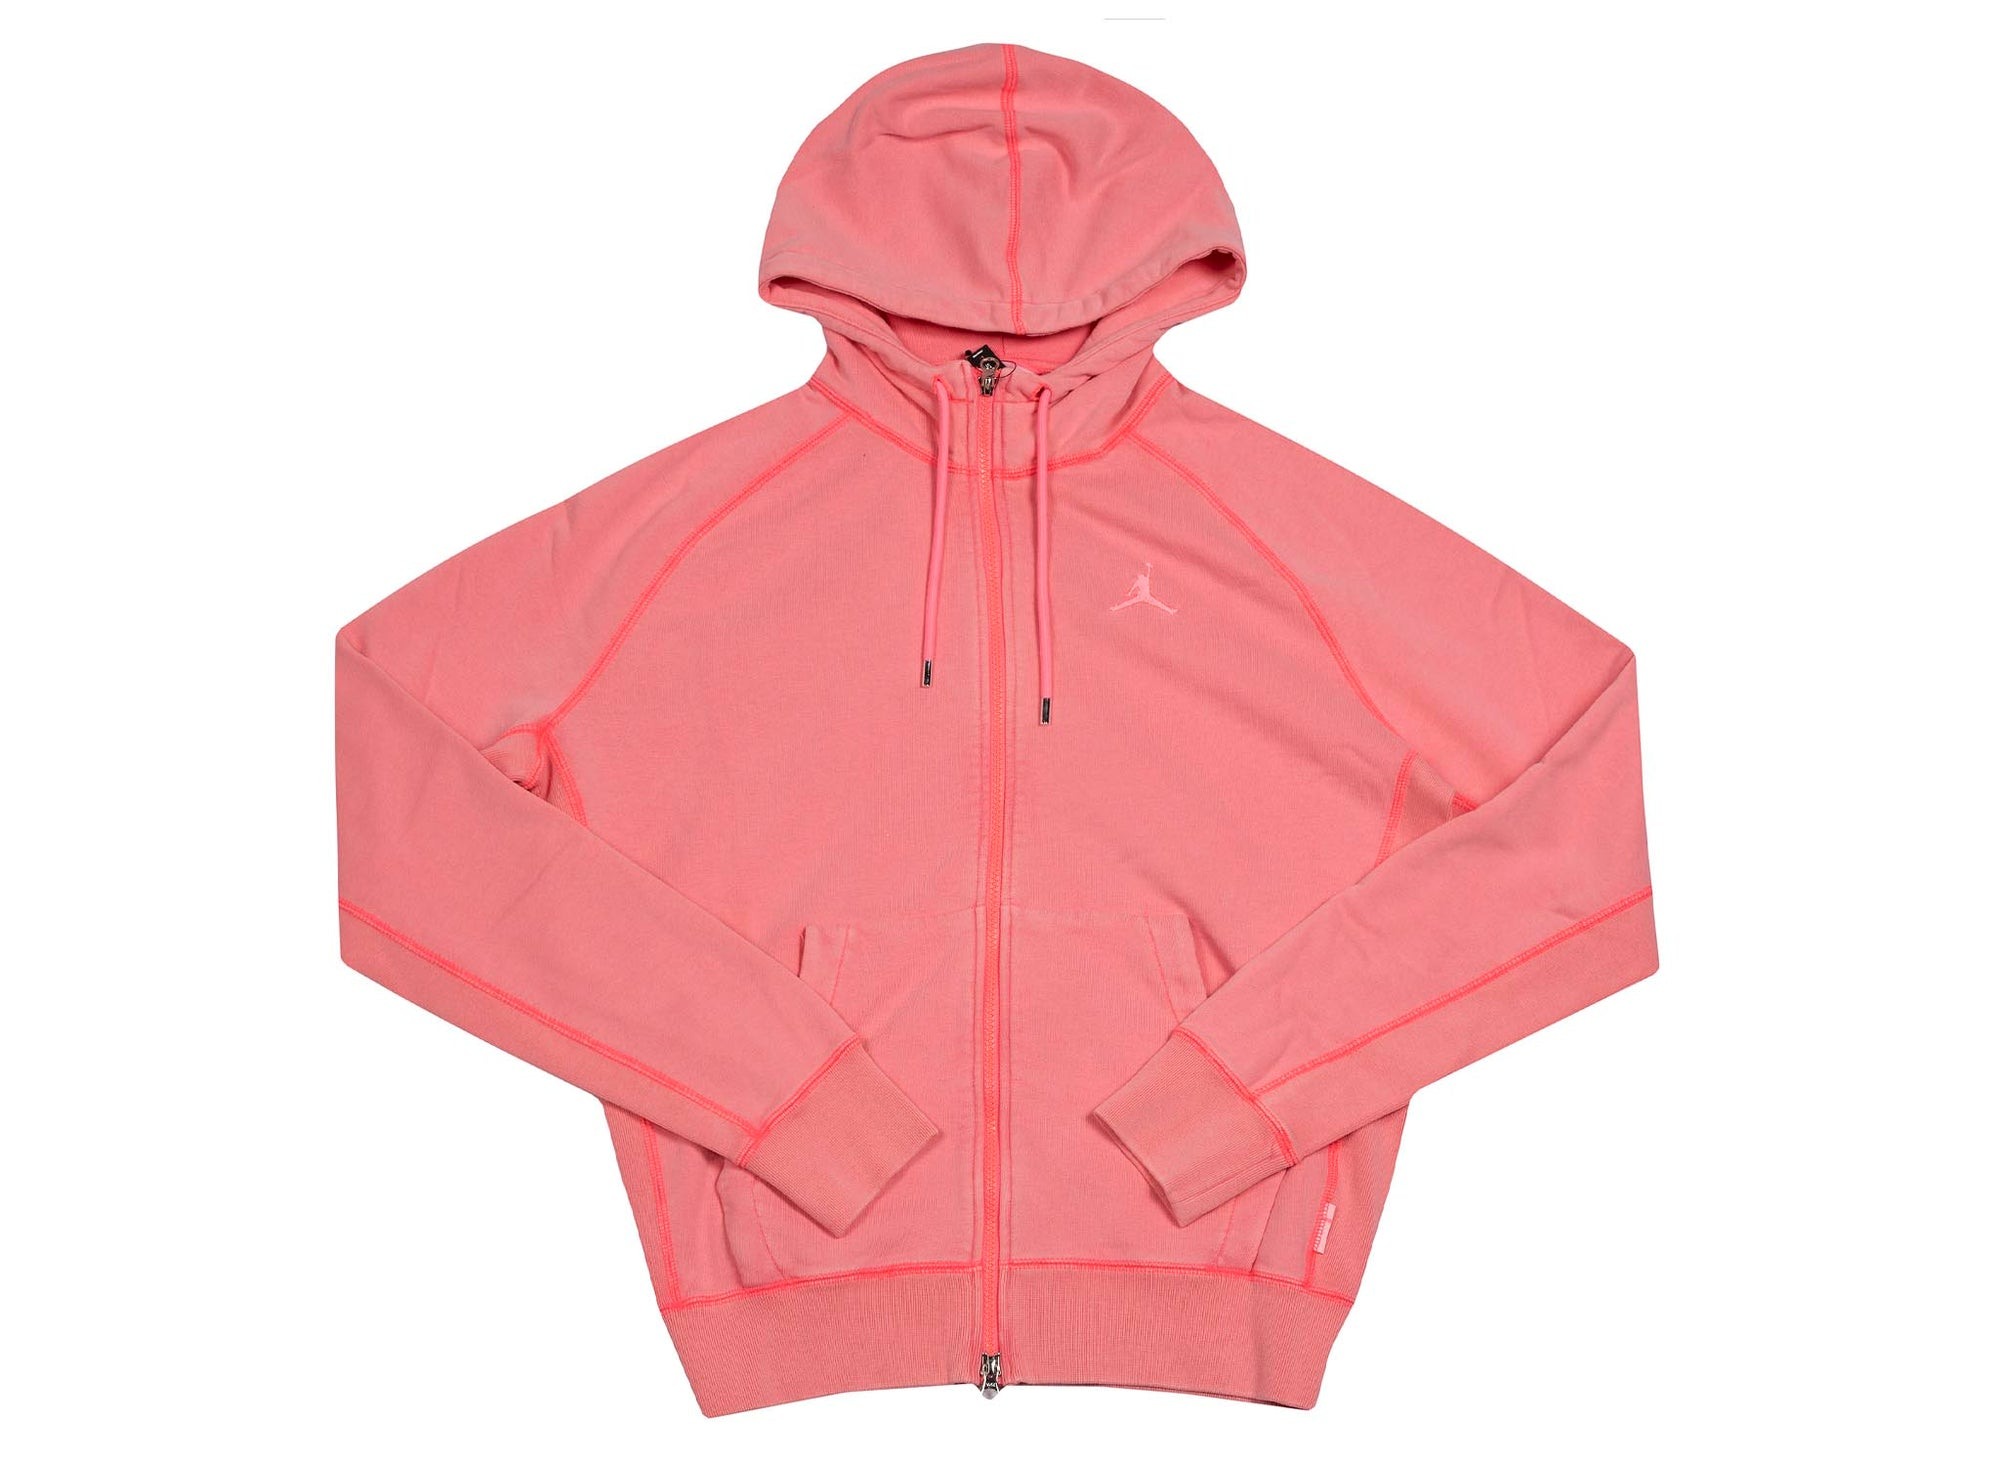 M J WINGS WASH FLC FULL ZIP DIGITAL PINK